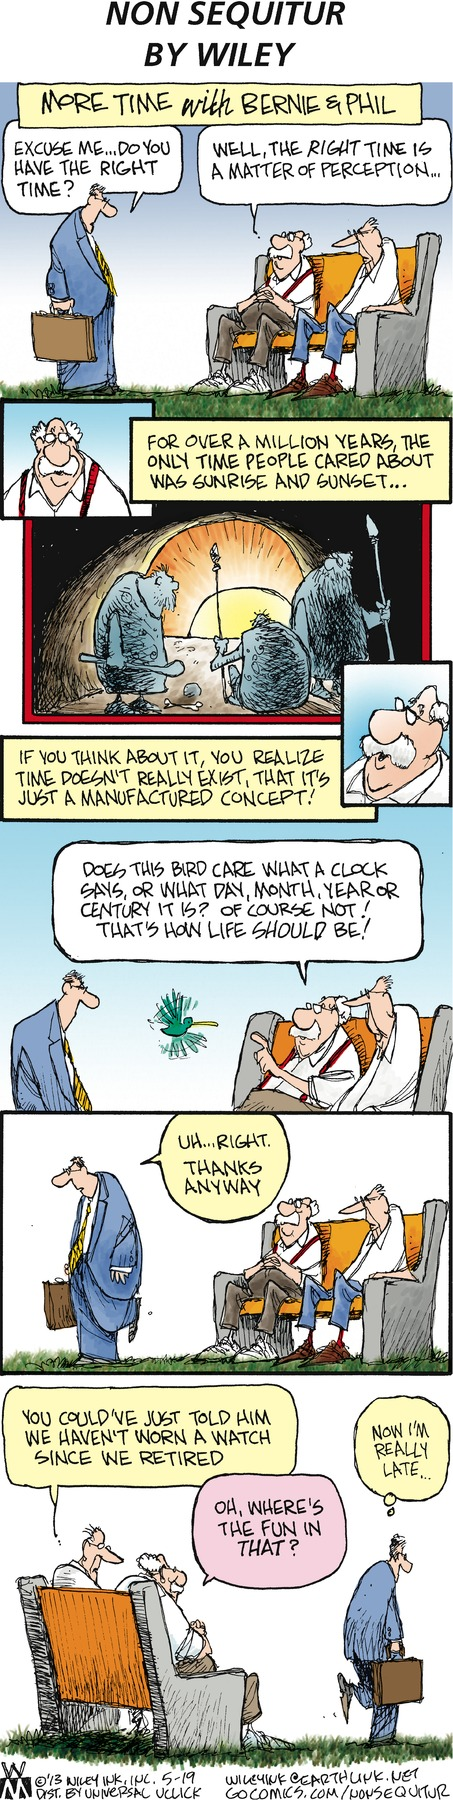 Non Sequitur for May 19, 2013 Comic Strip